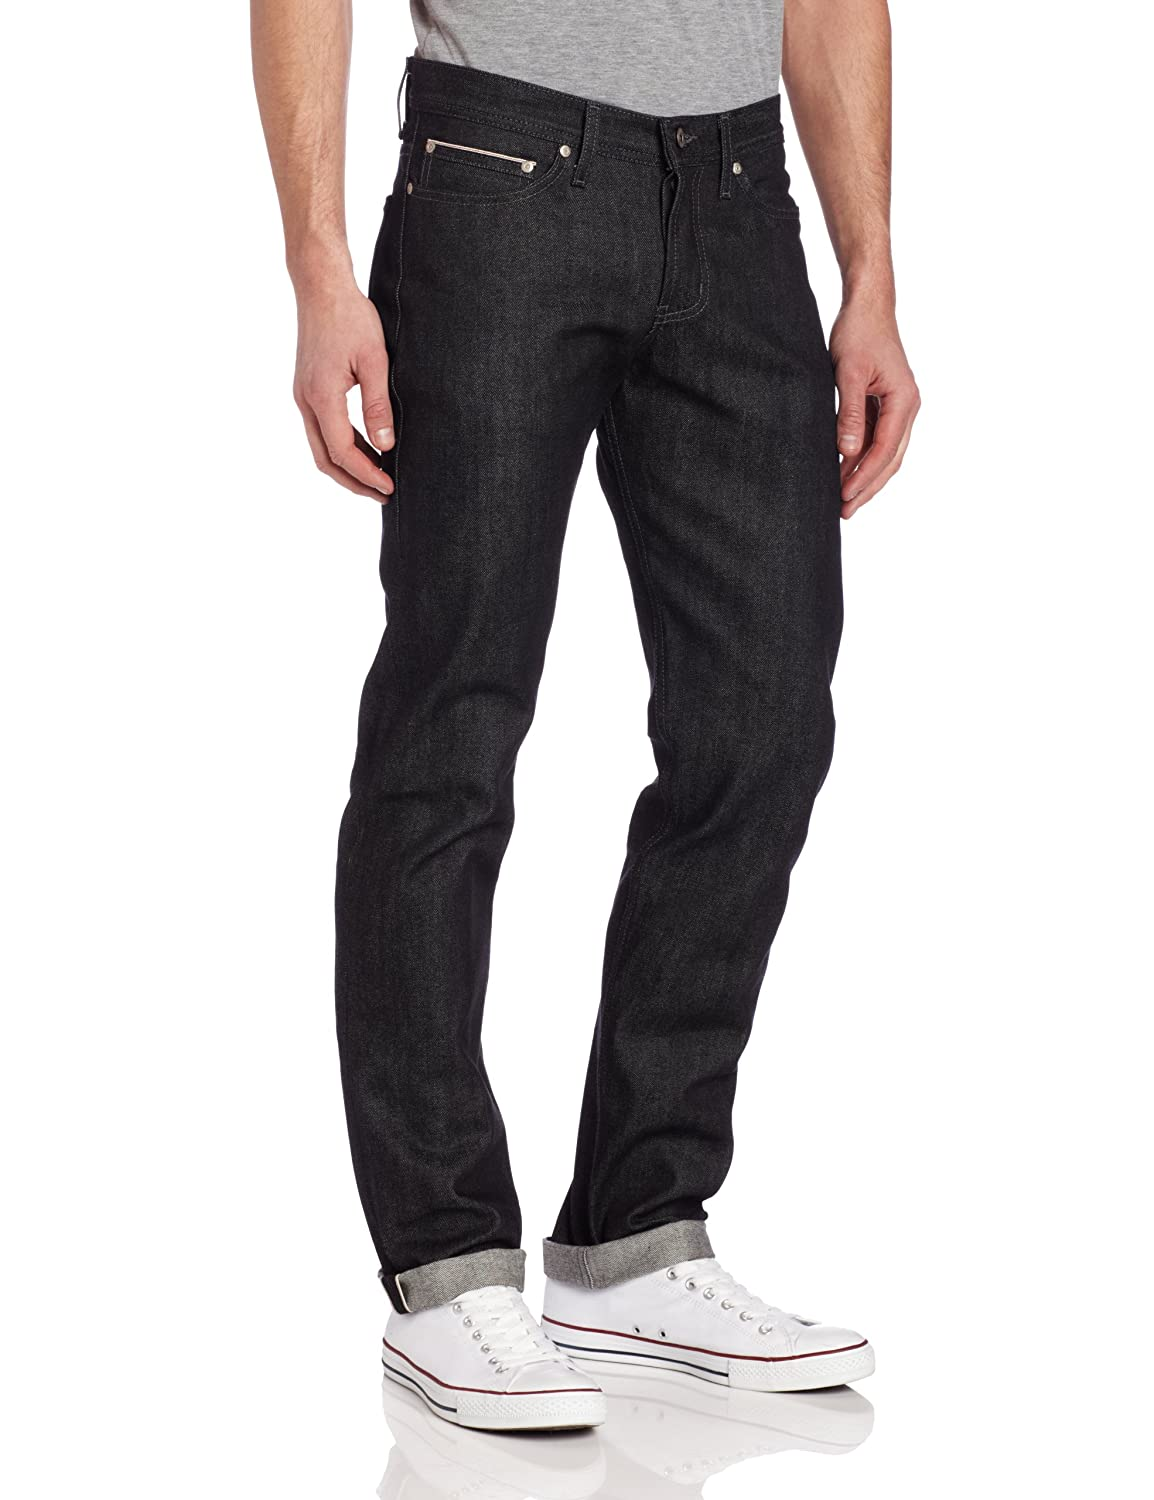 a5800302 Amazon.com: Naked & Famous Denim Men's Weird Guy Jean, Black, 29x35:  Clothing